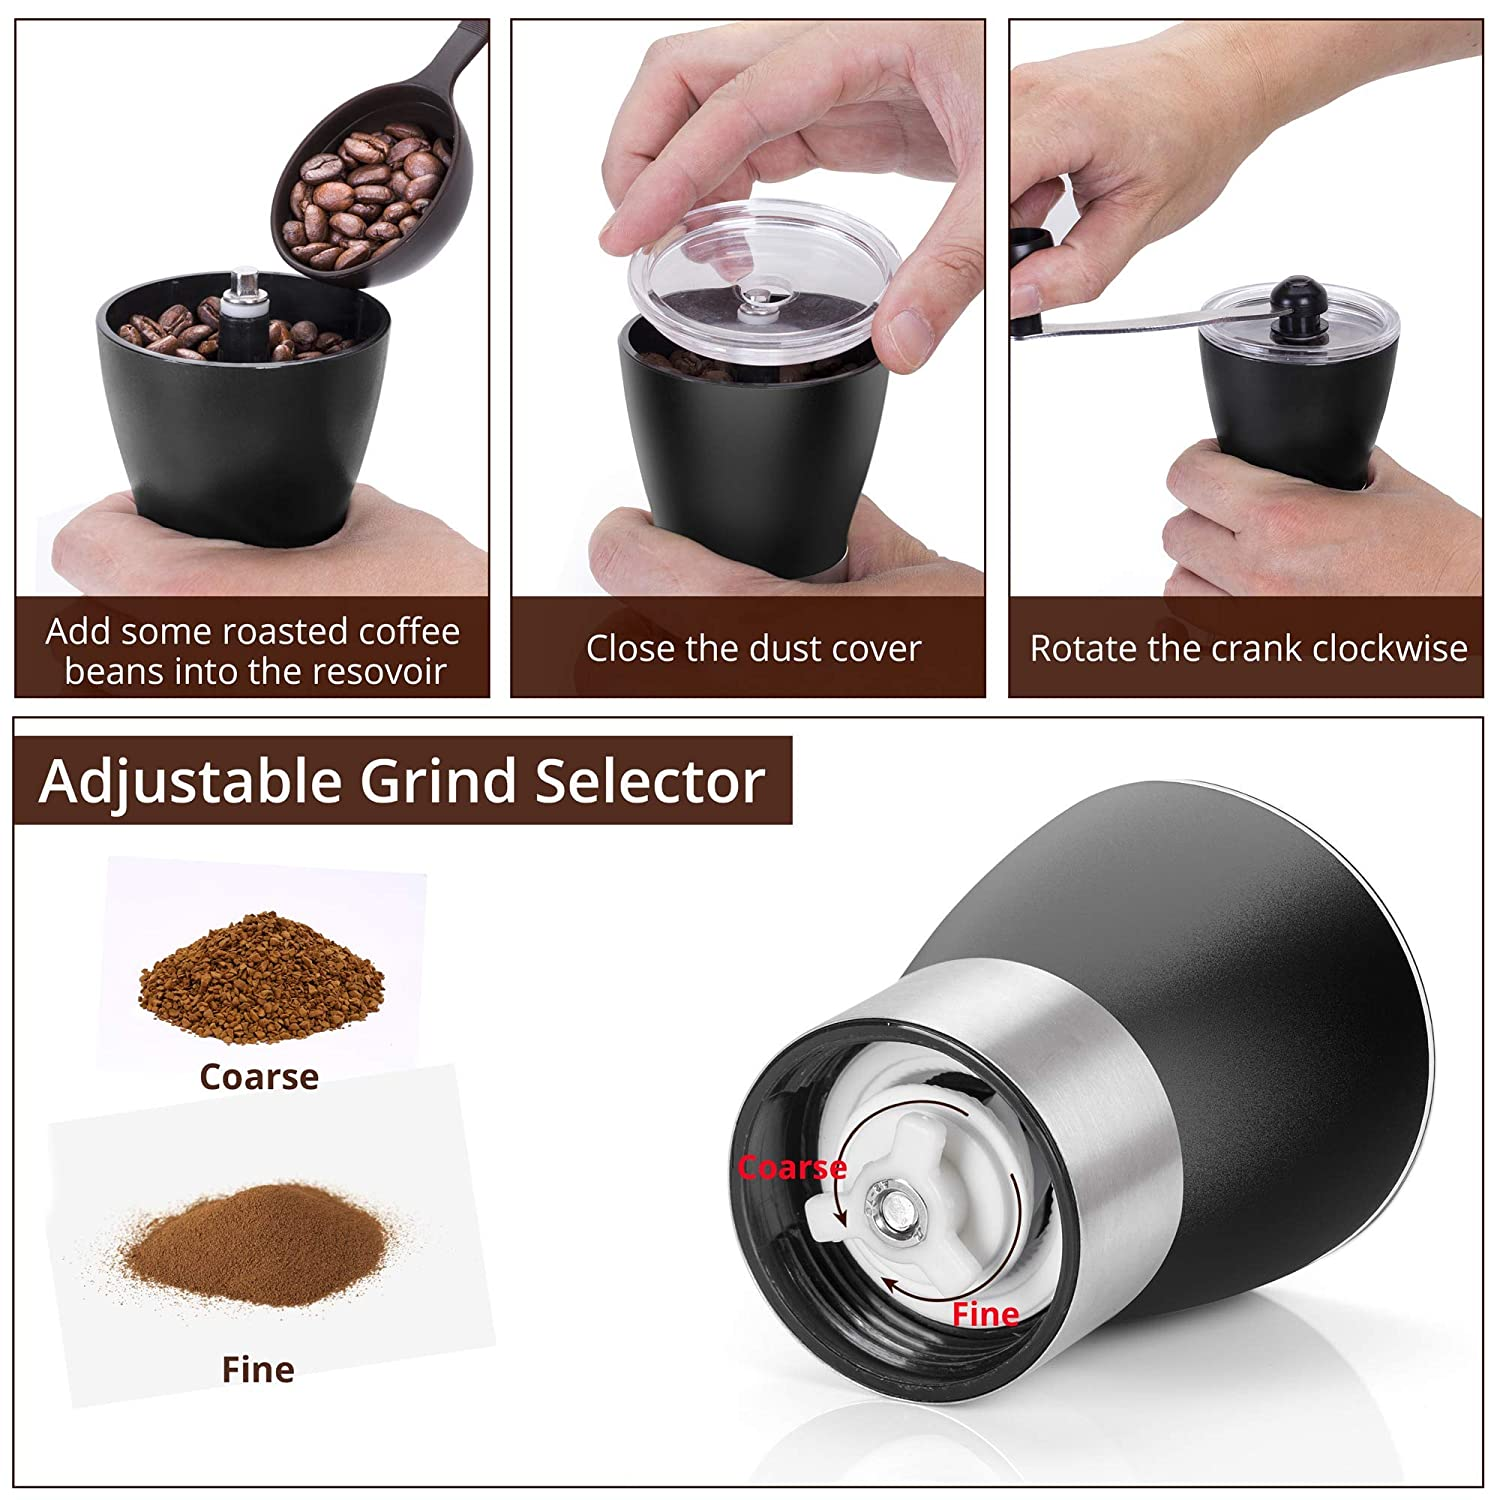 Two Clear Glass Jars Manual Coffee Mill Grinder with Ceramic Burrs Stainless Steel Handle and Silicon Cover